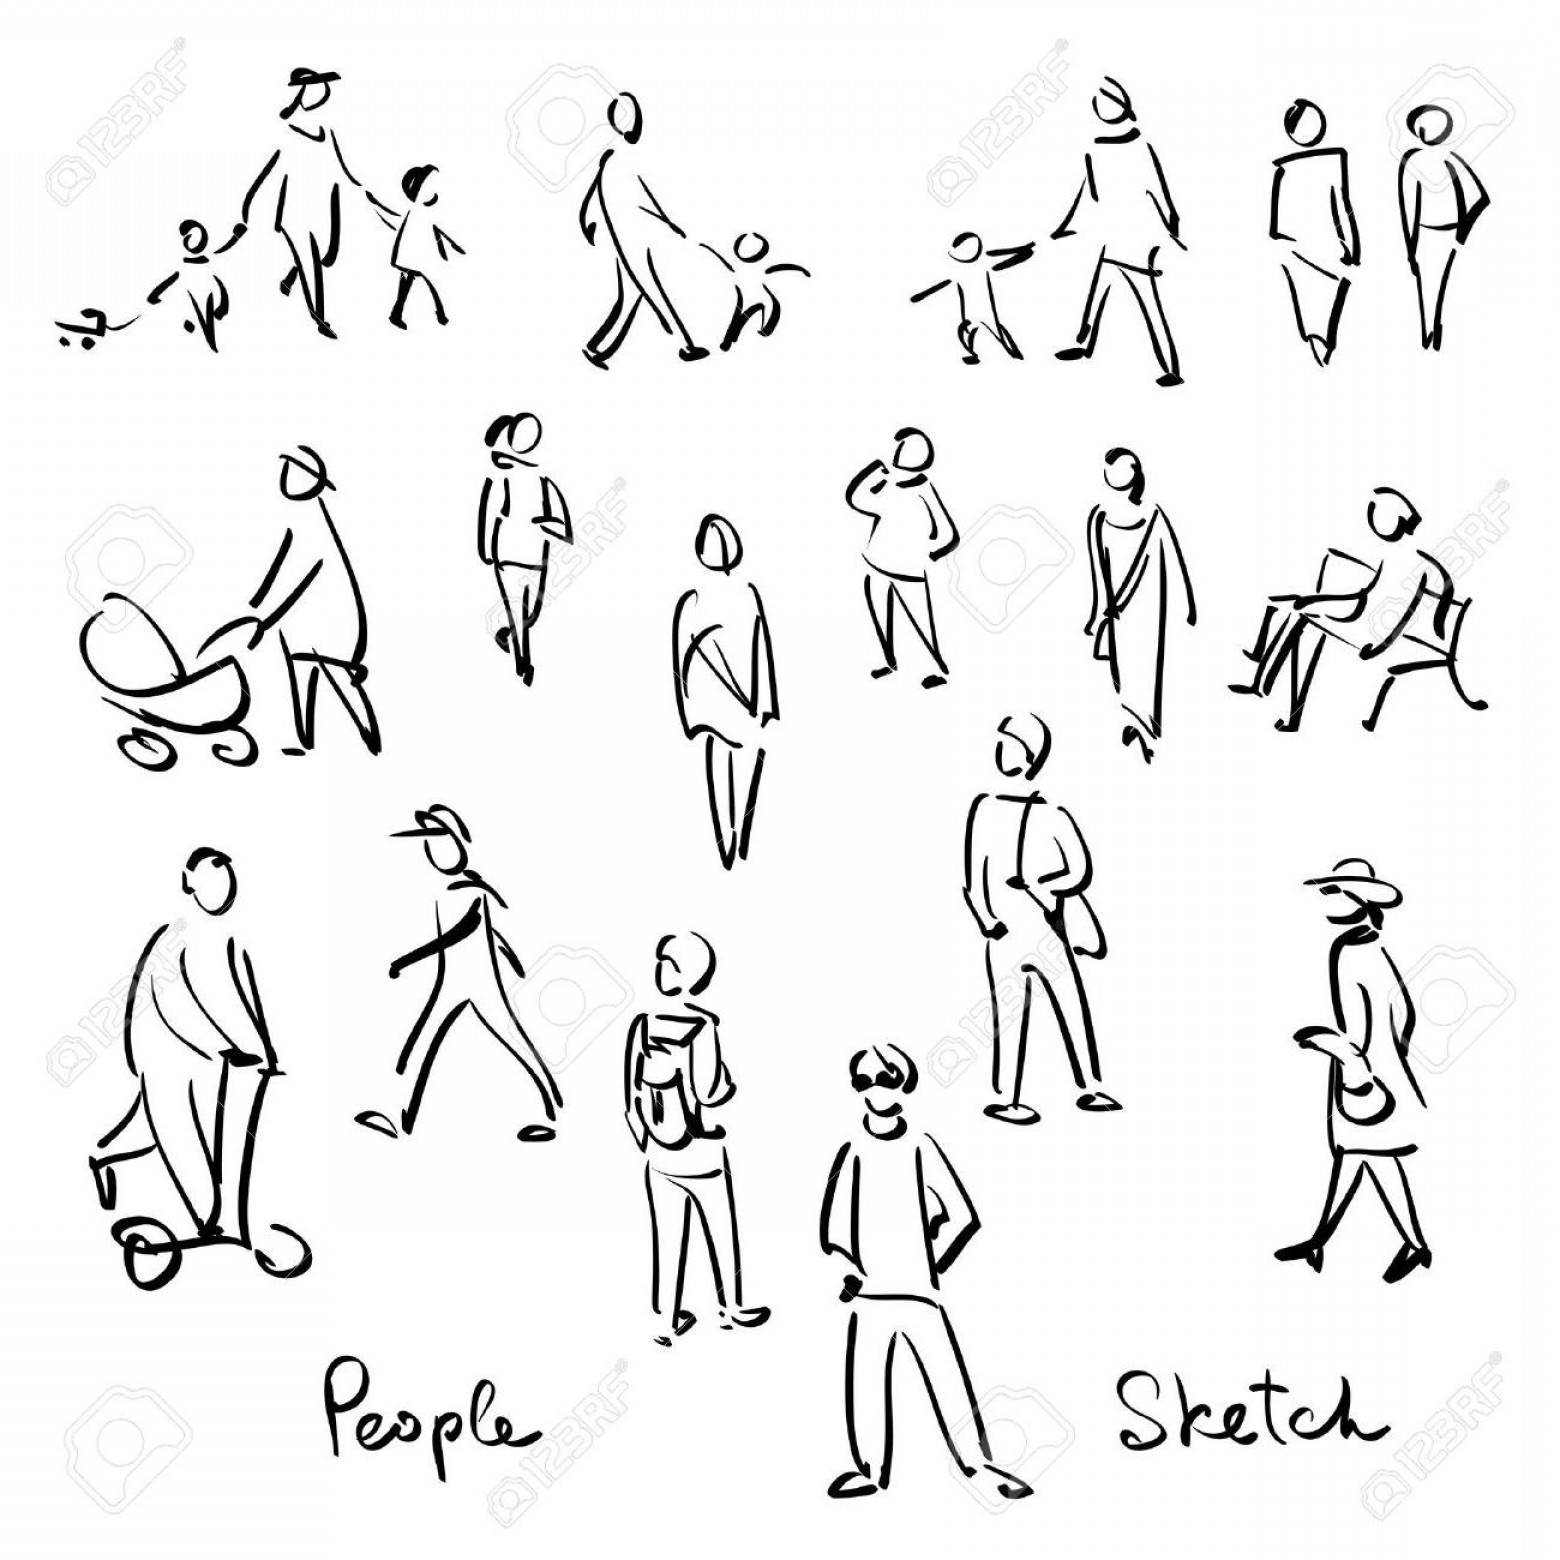 Vector People Free Clip Art: Best Hd Vector People Outline Image